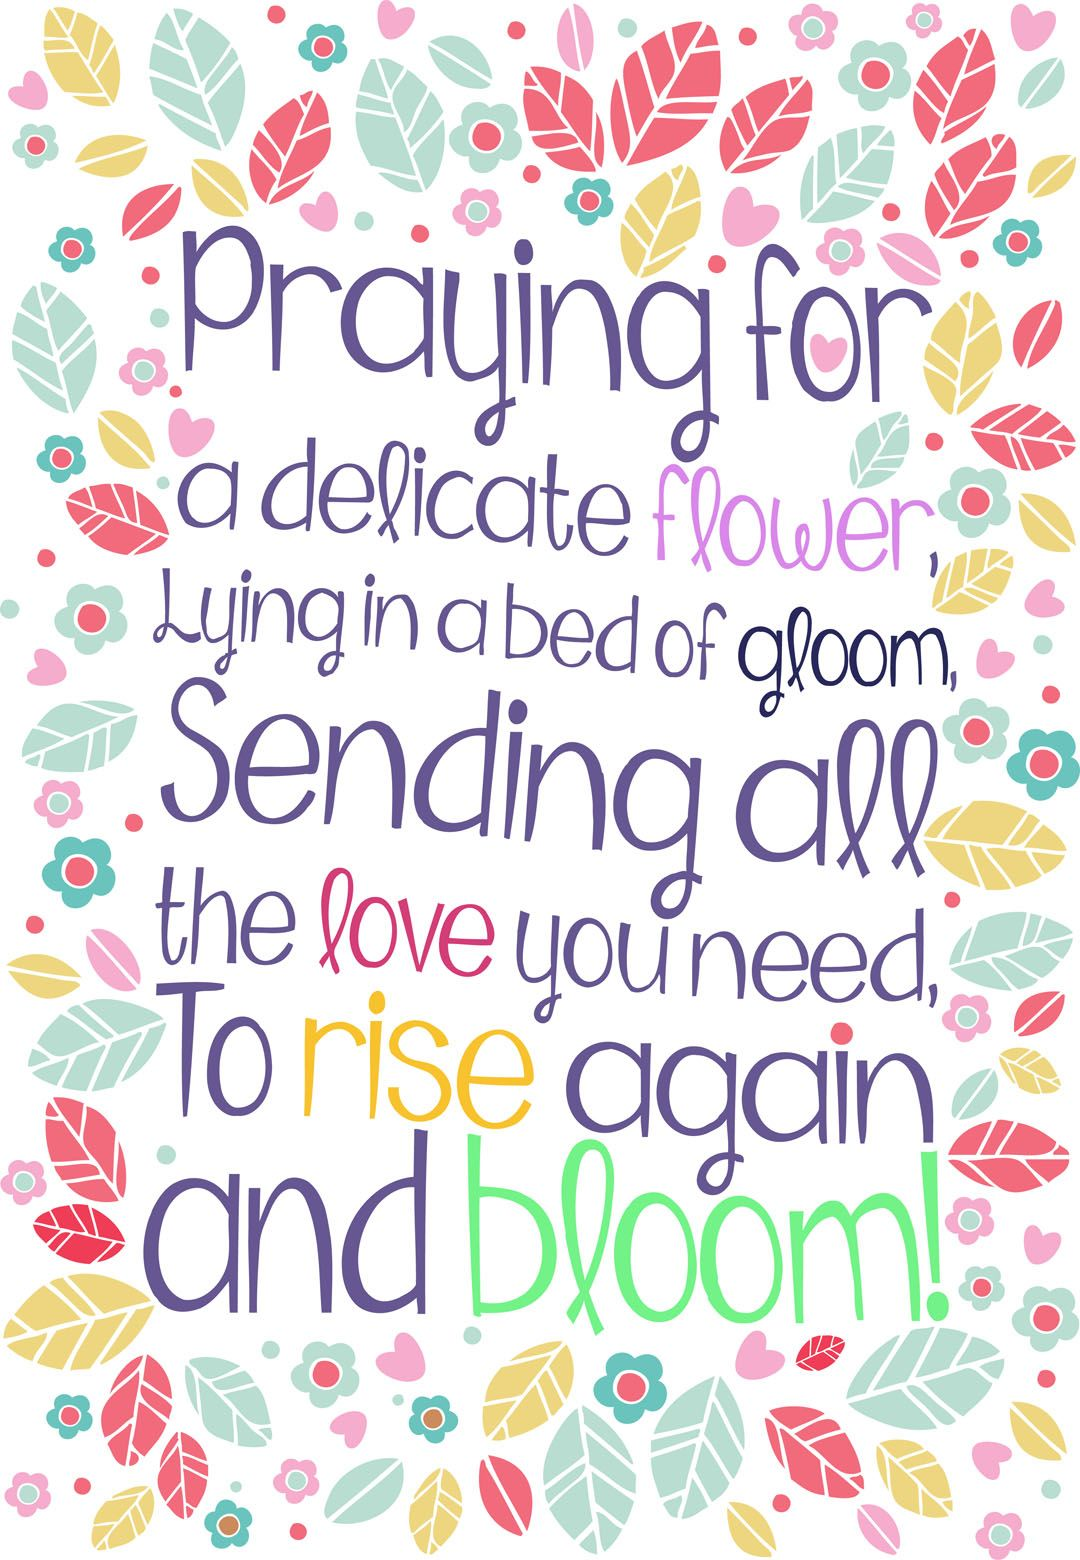 Free printable rise again and bloom get well greeting